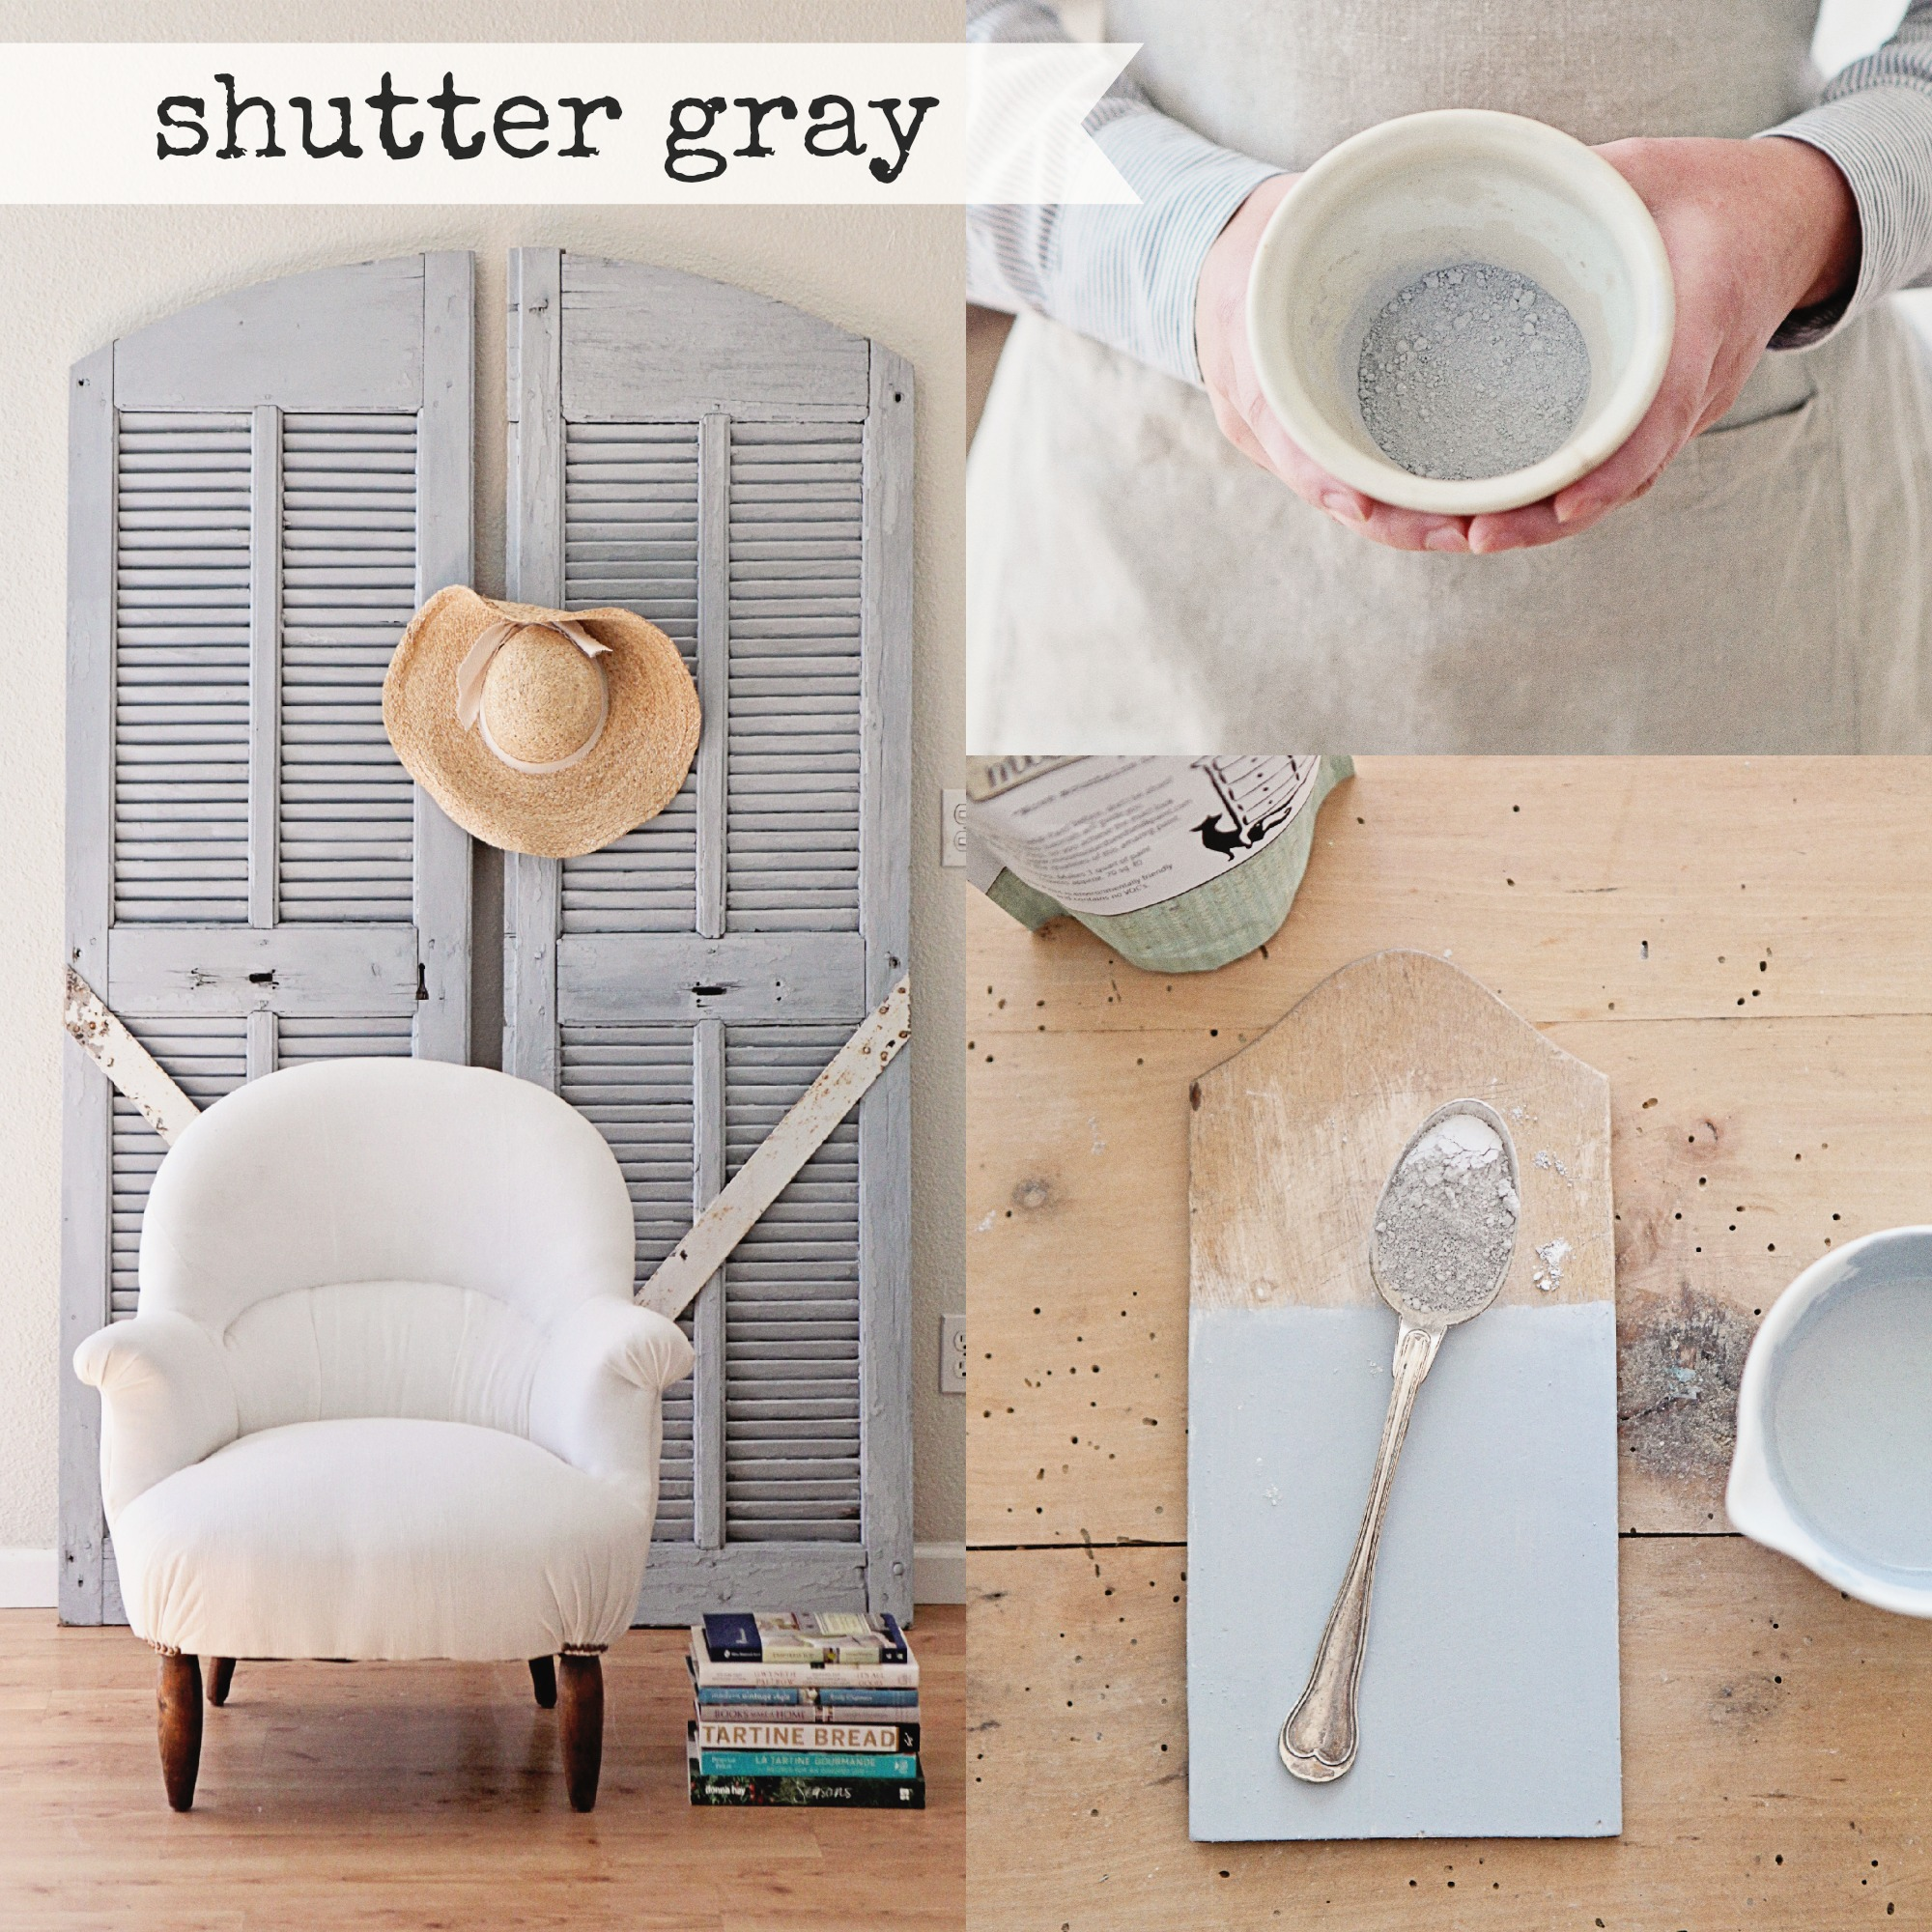 shutter-gray-Collage